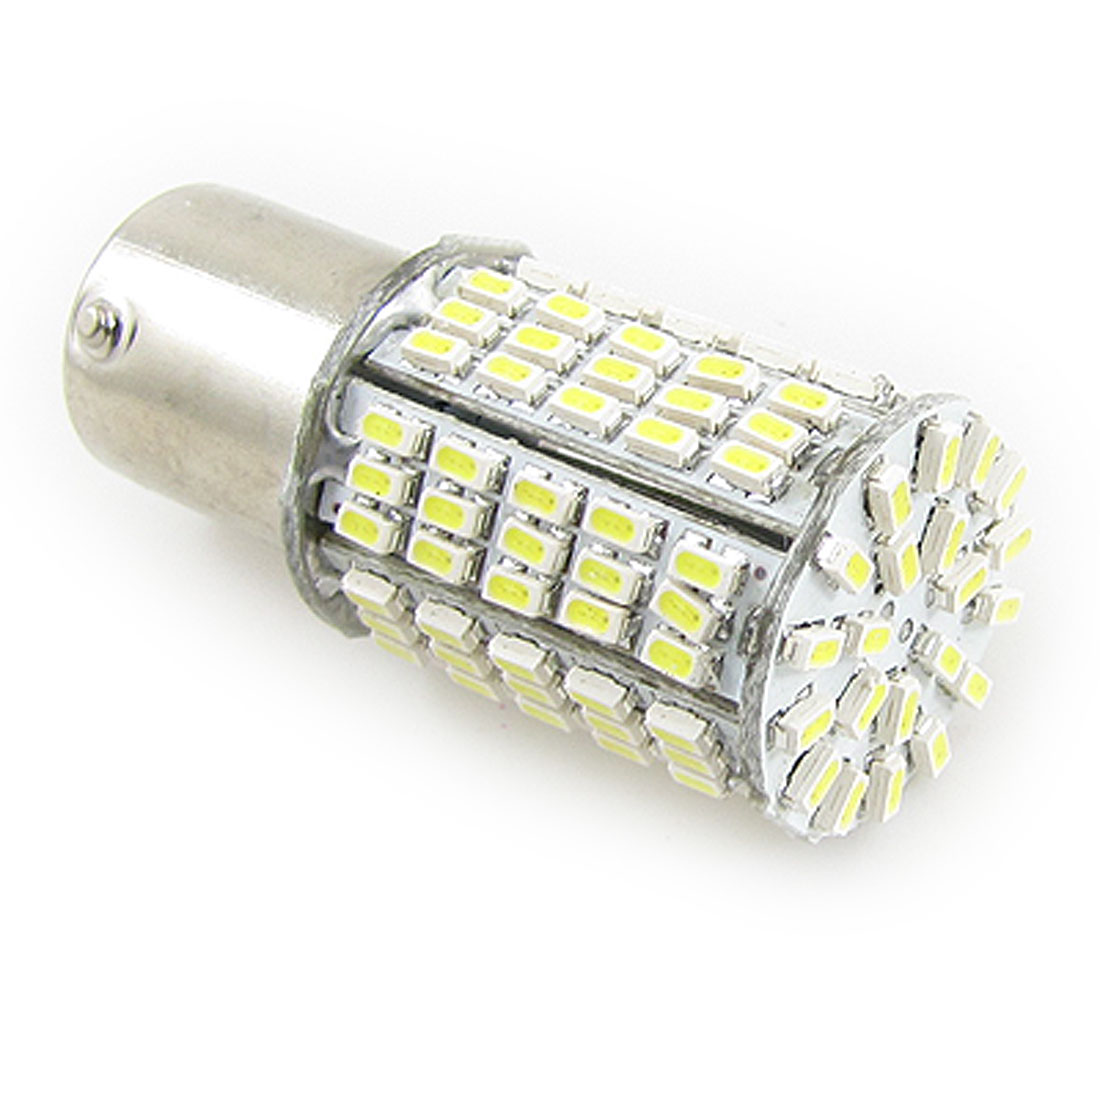 Auto Car BA15S 1156 White 125 SMD LED Turn Signal Light Bulb